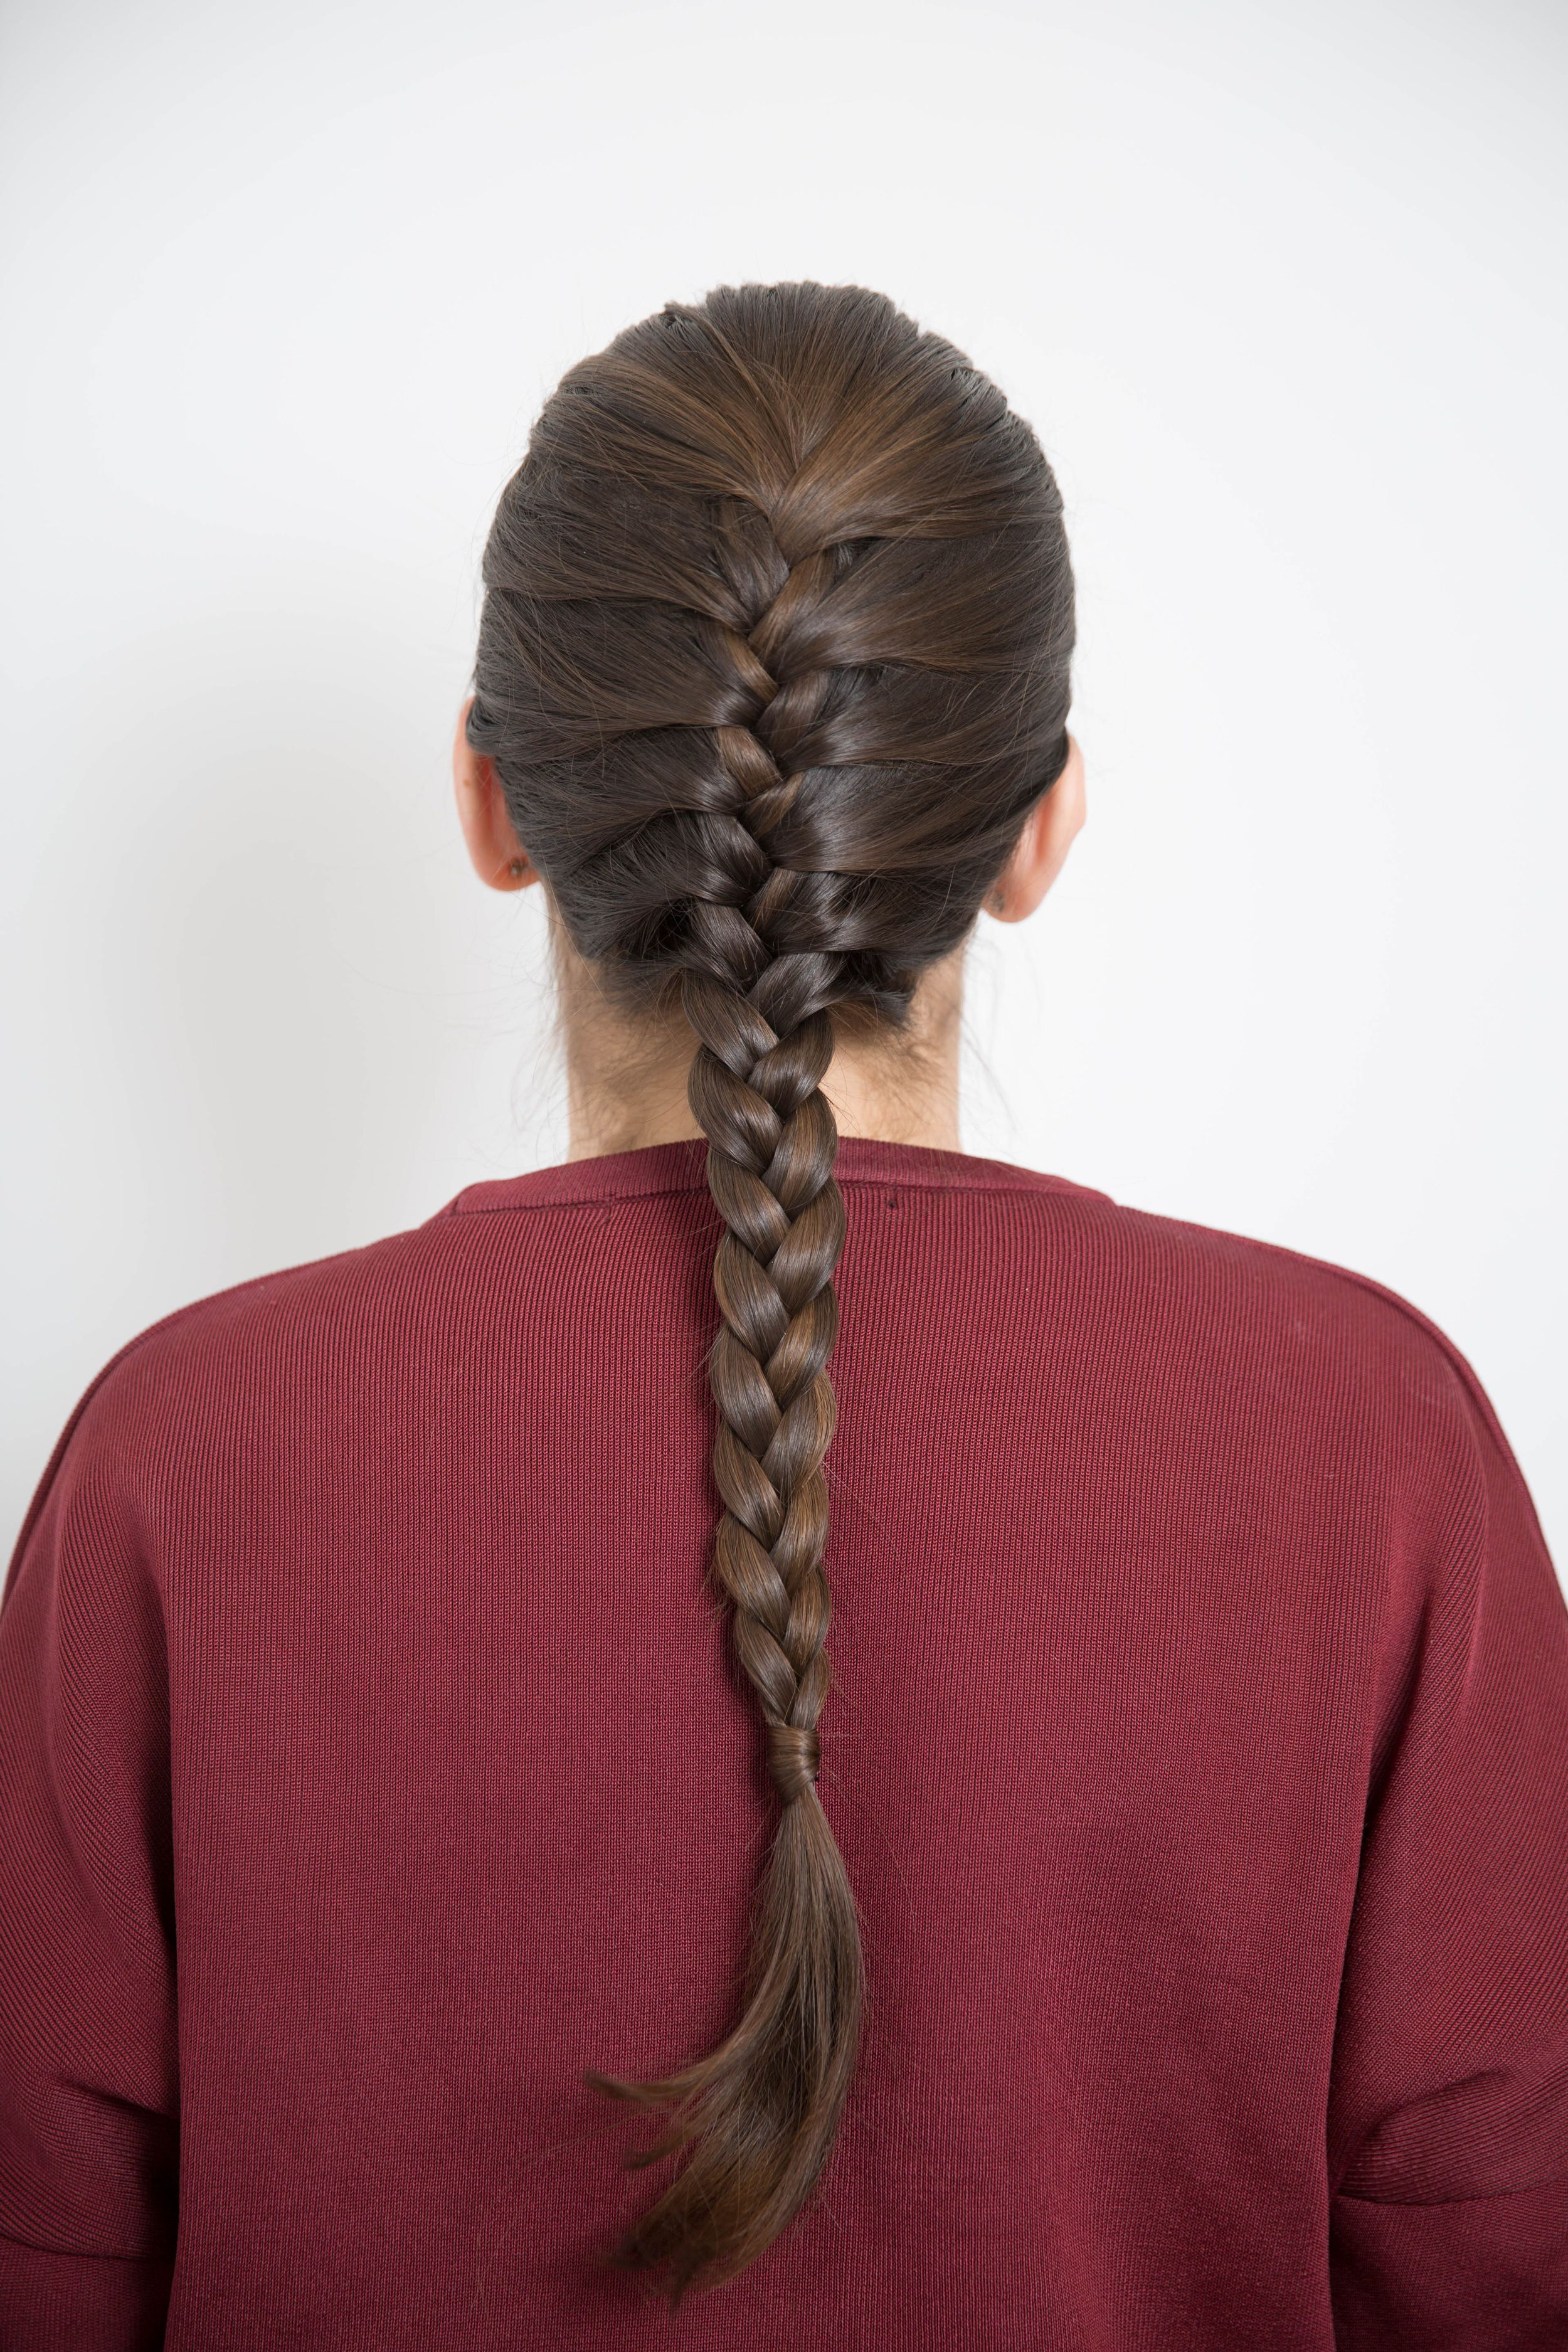 How to create every braid you've ever loved in 17 mesmerising GIFs